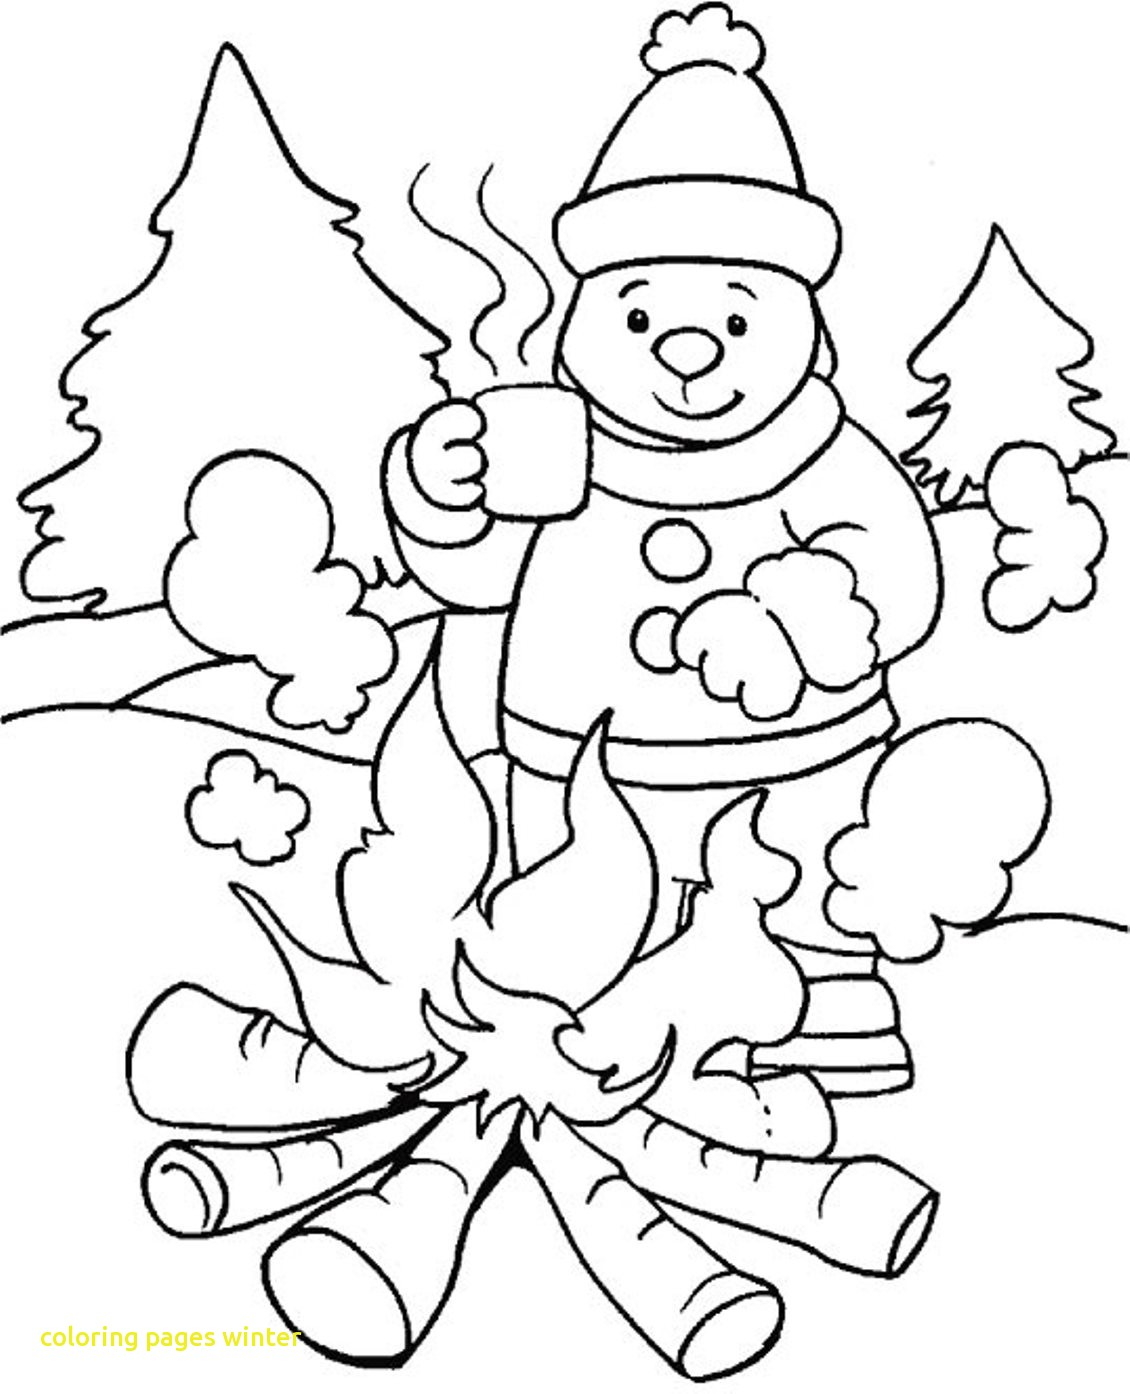 Printable Winter Coloring Pages For Kids at GetColorings.com | Free ...